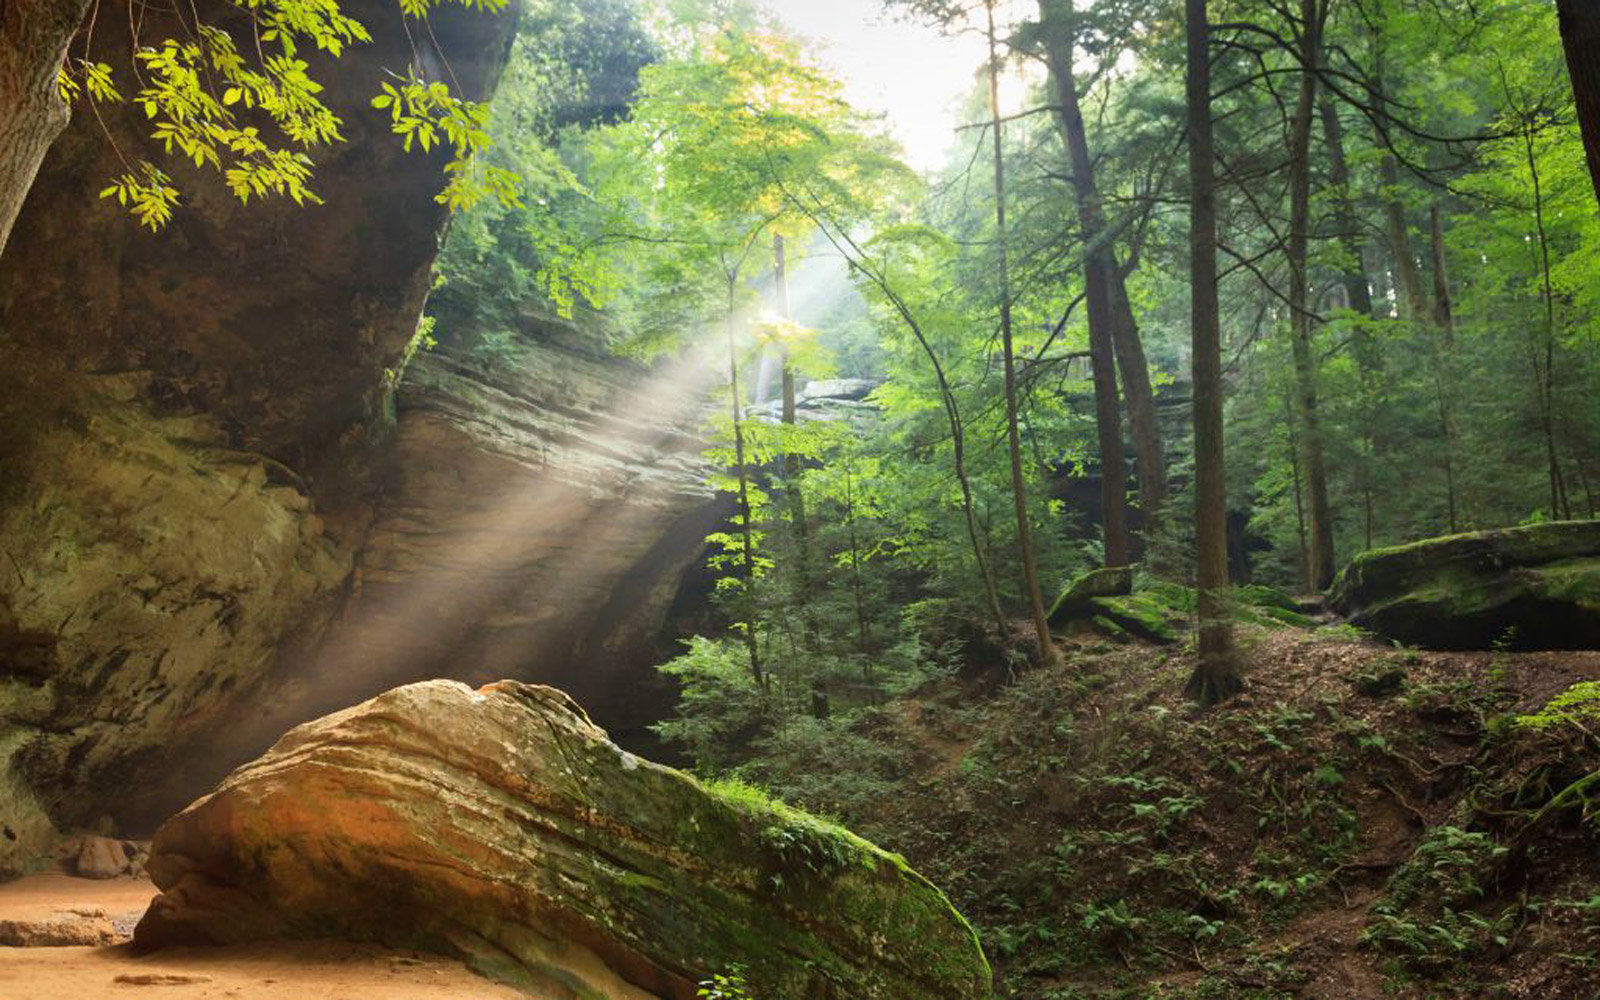 Ash Cave, Hocking Hills State Park, Ohio, USA. (Photo by: Jumping Rocks/UIG via Getty Images)